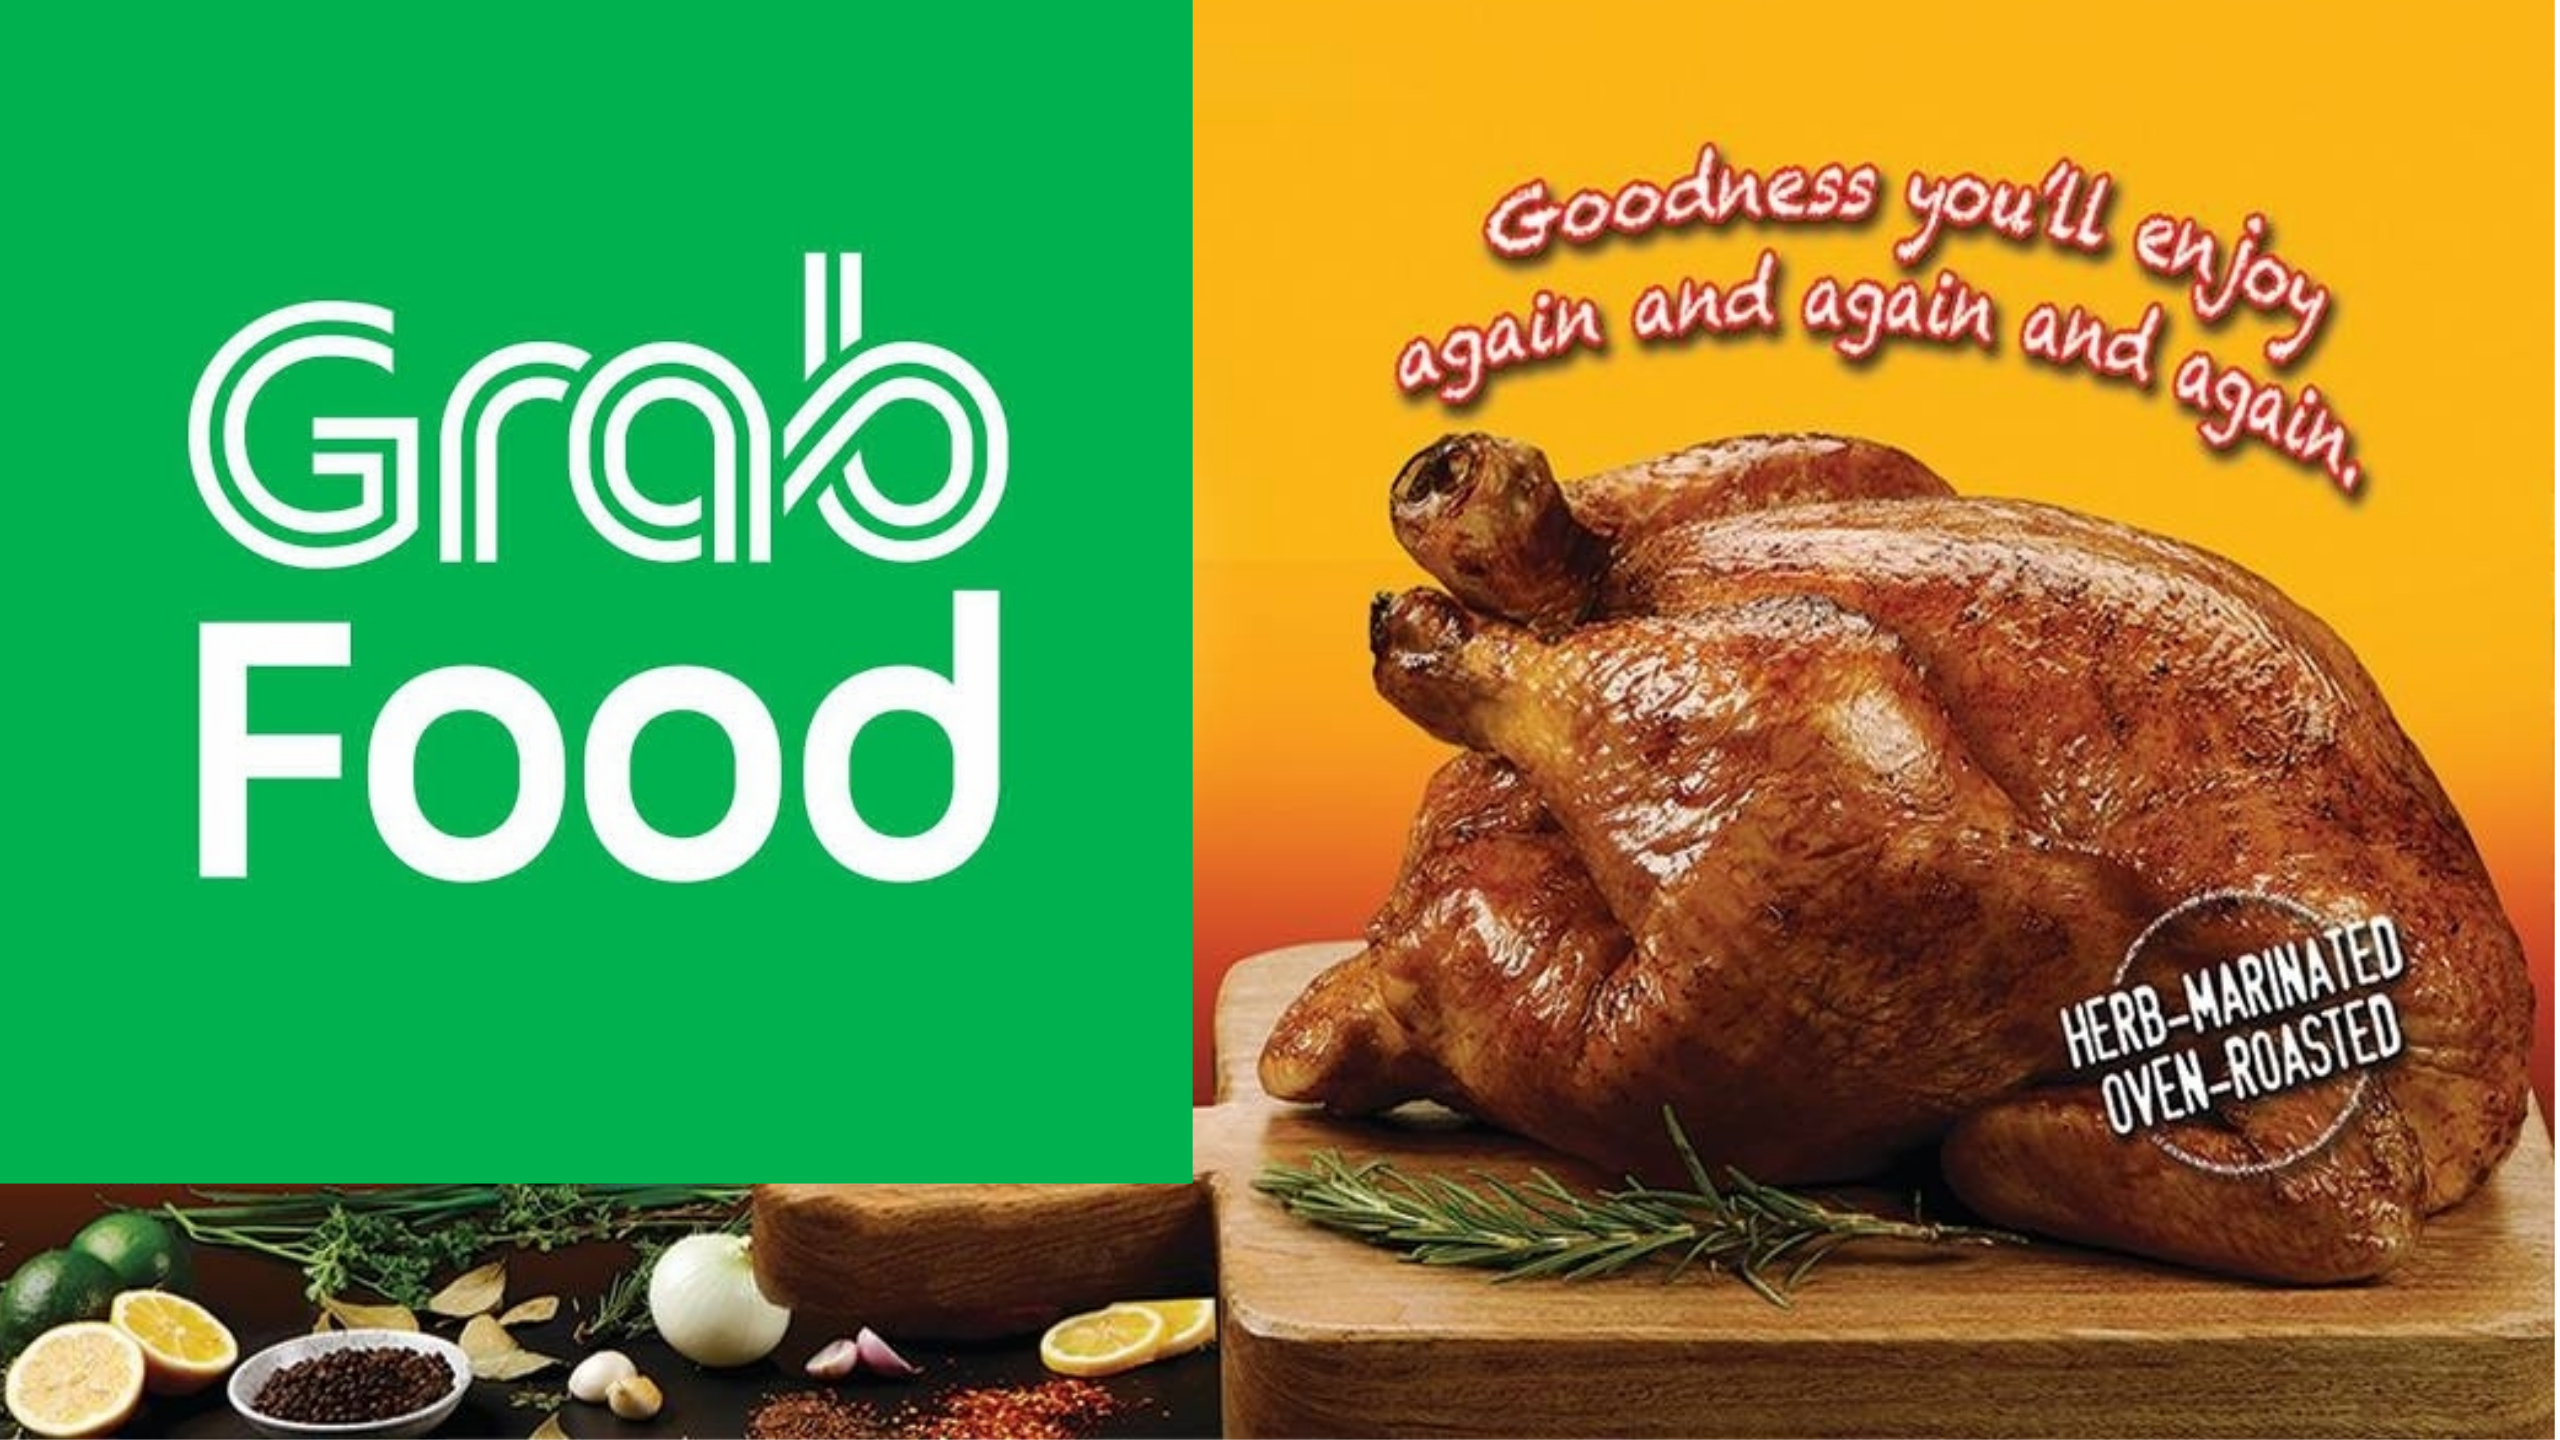 Photo of rockos chicken with grab food logo